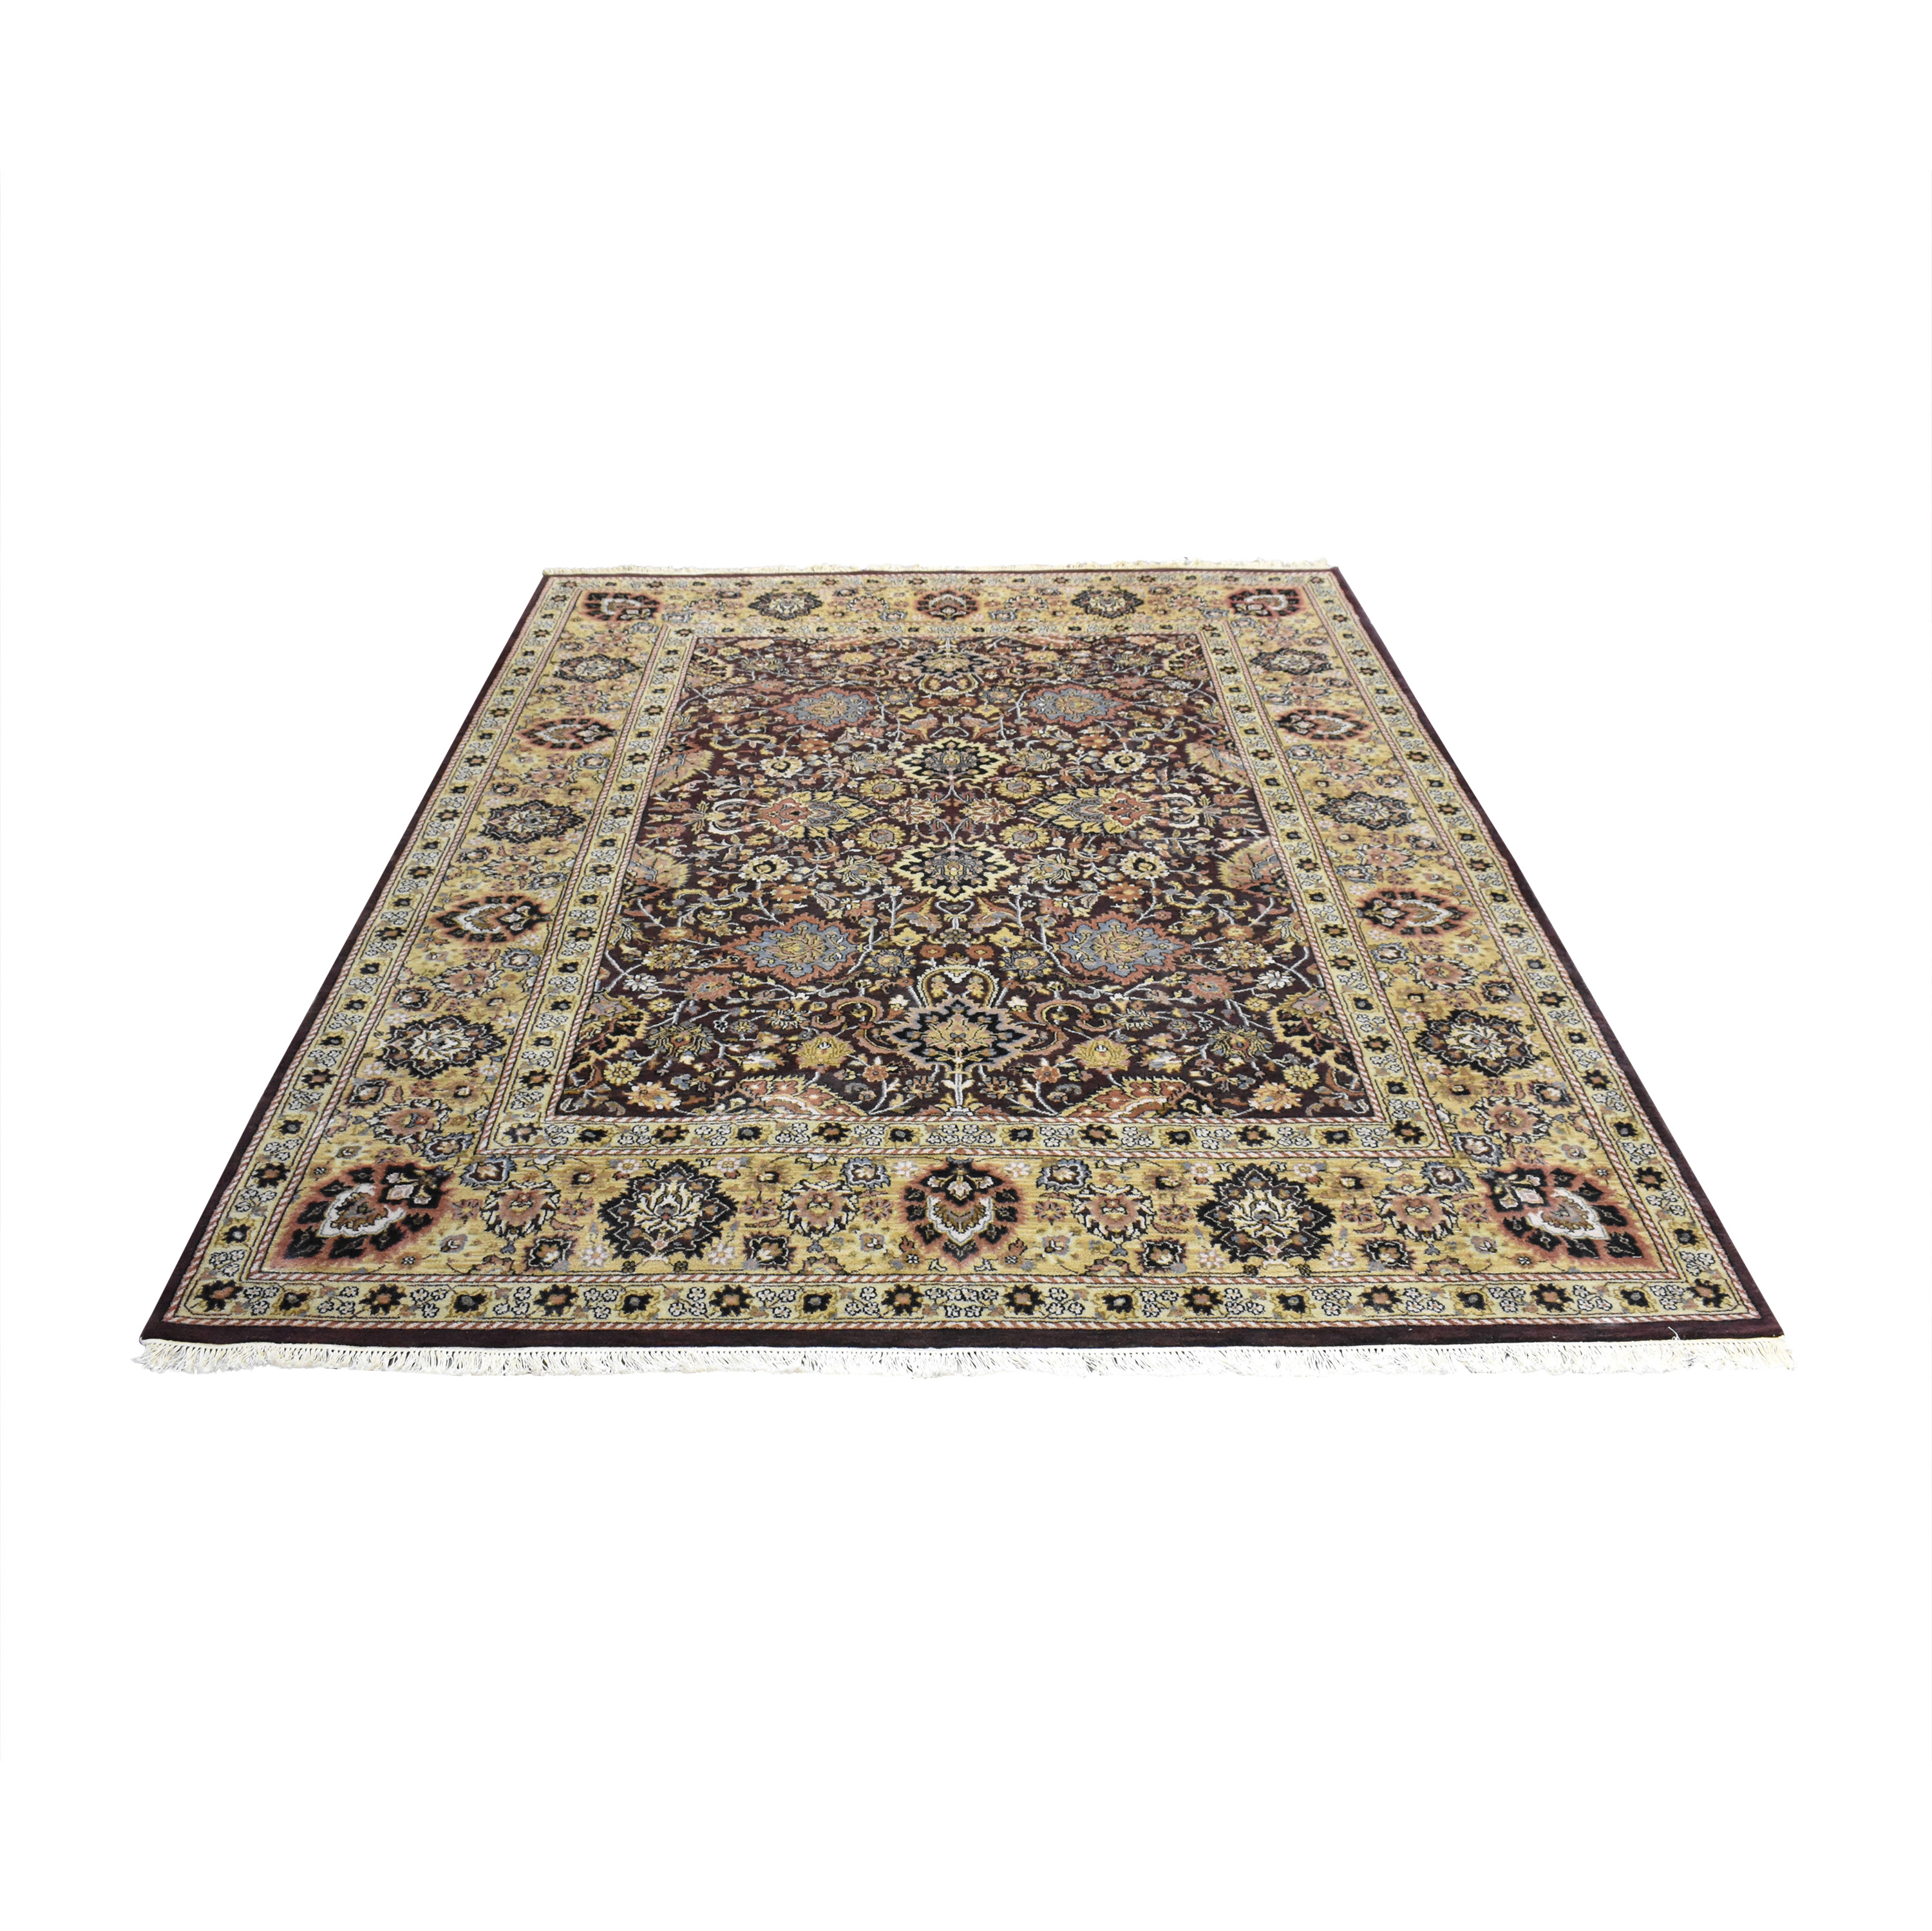 Couristan Couristan Meshed Area Rug price